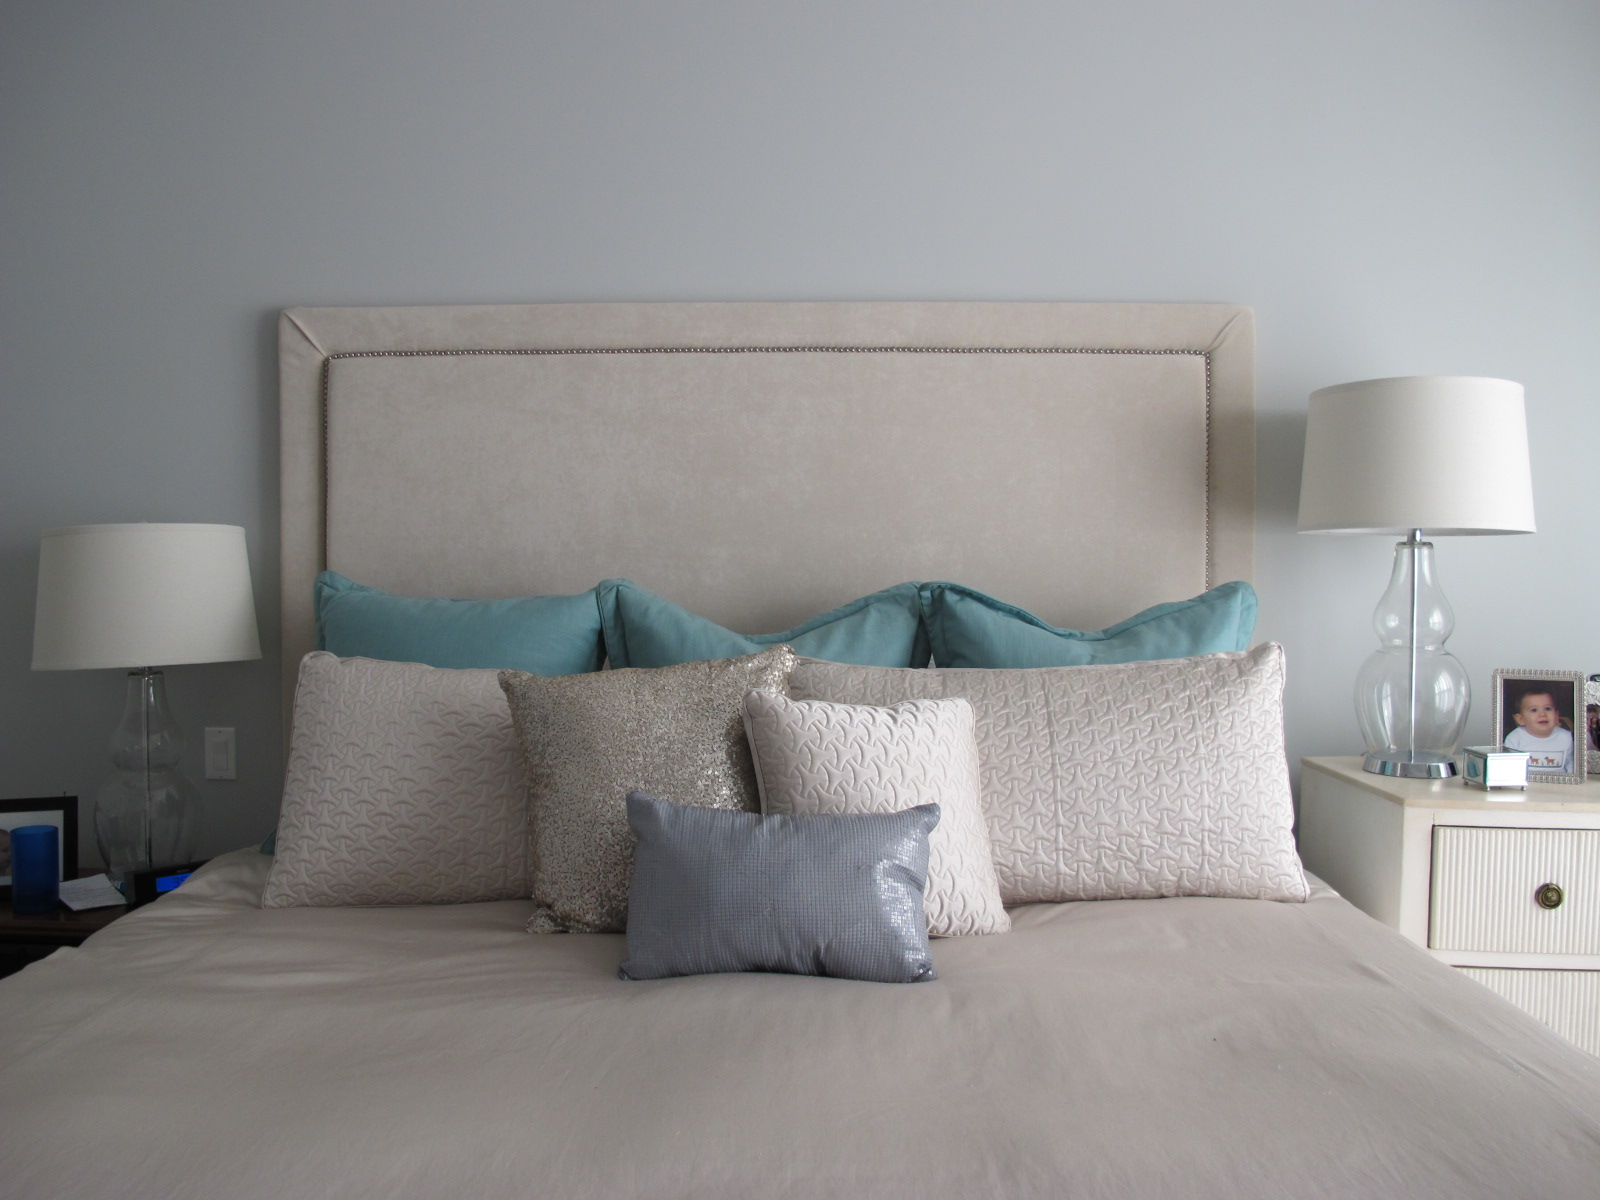 How To Make An Upholstered Headboard With Nailhead Trim